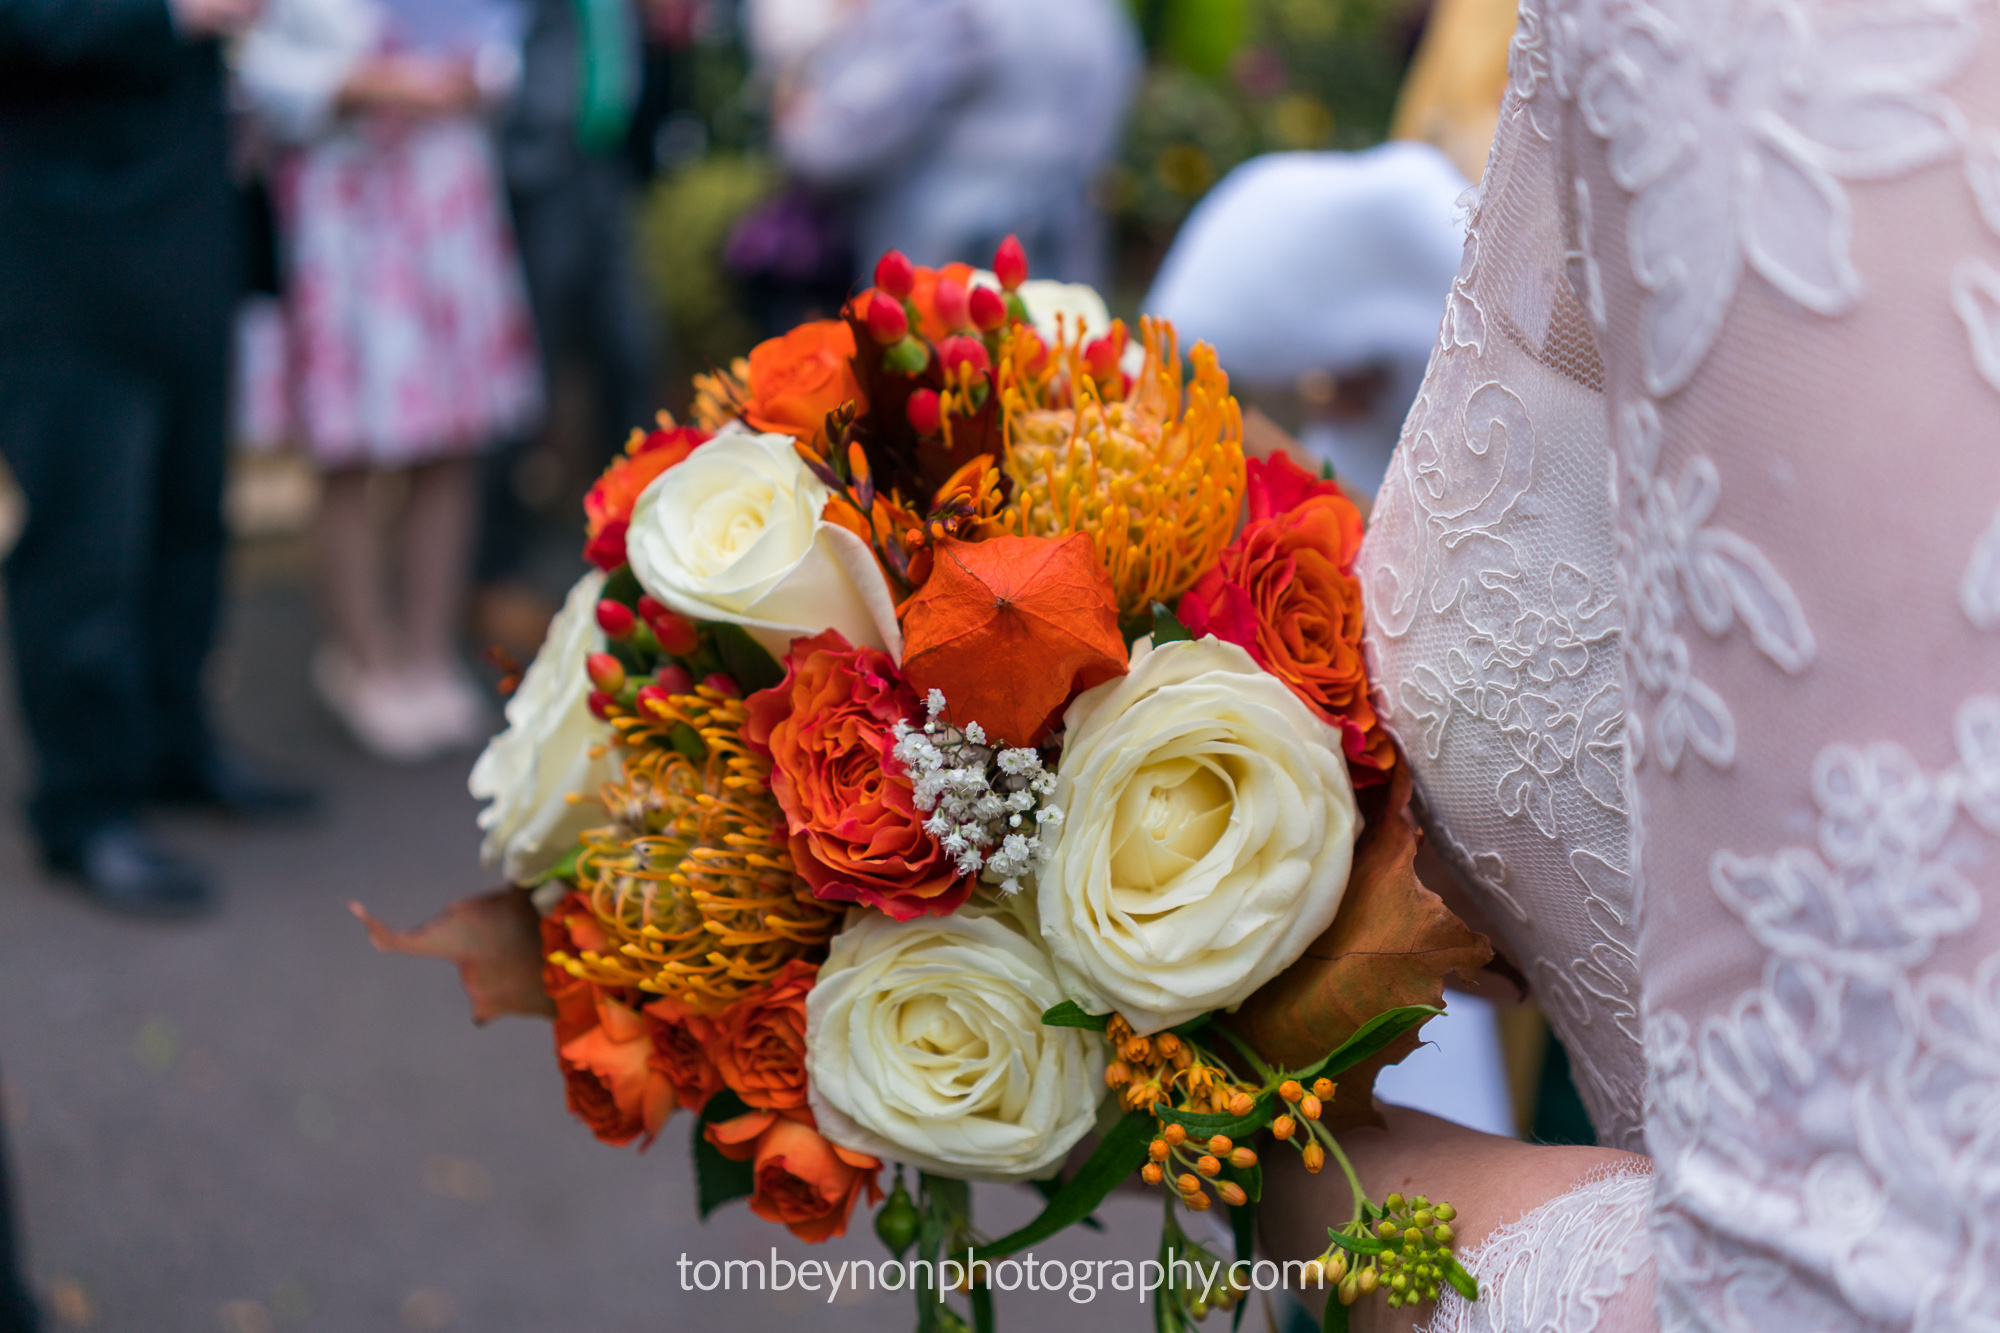 Close up of the bride's flowers and wedding dress detail